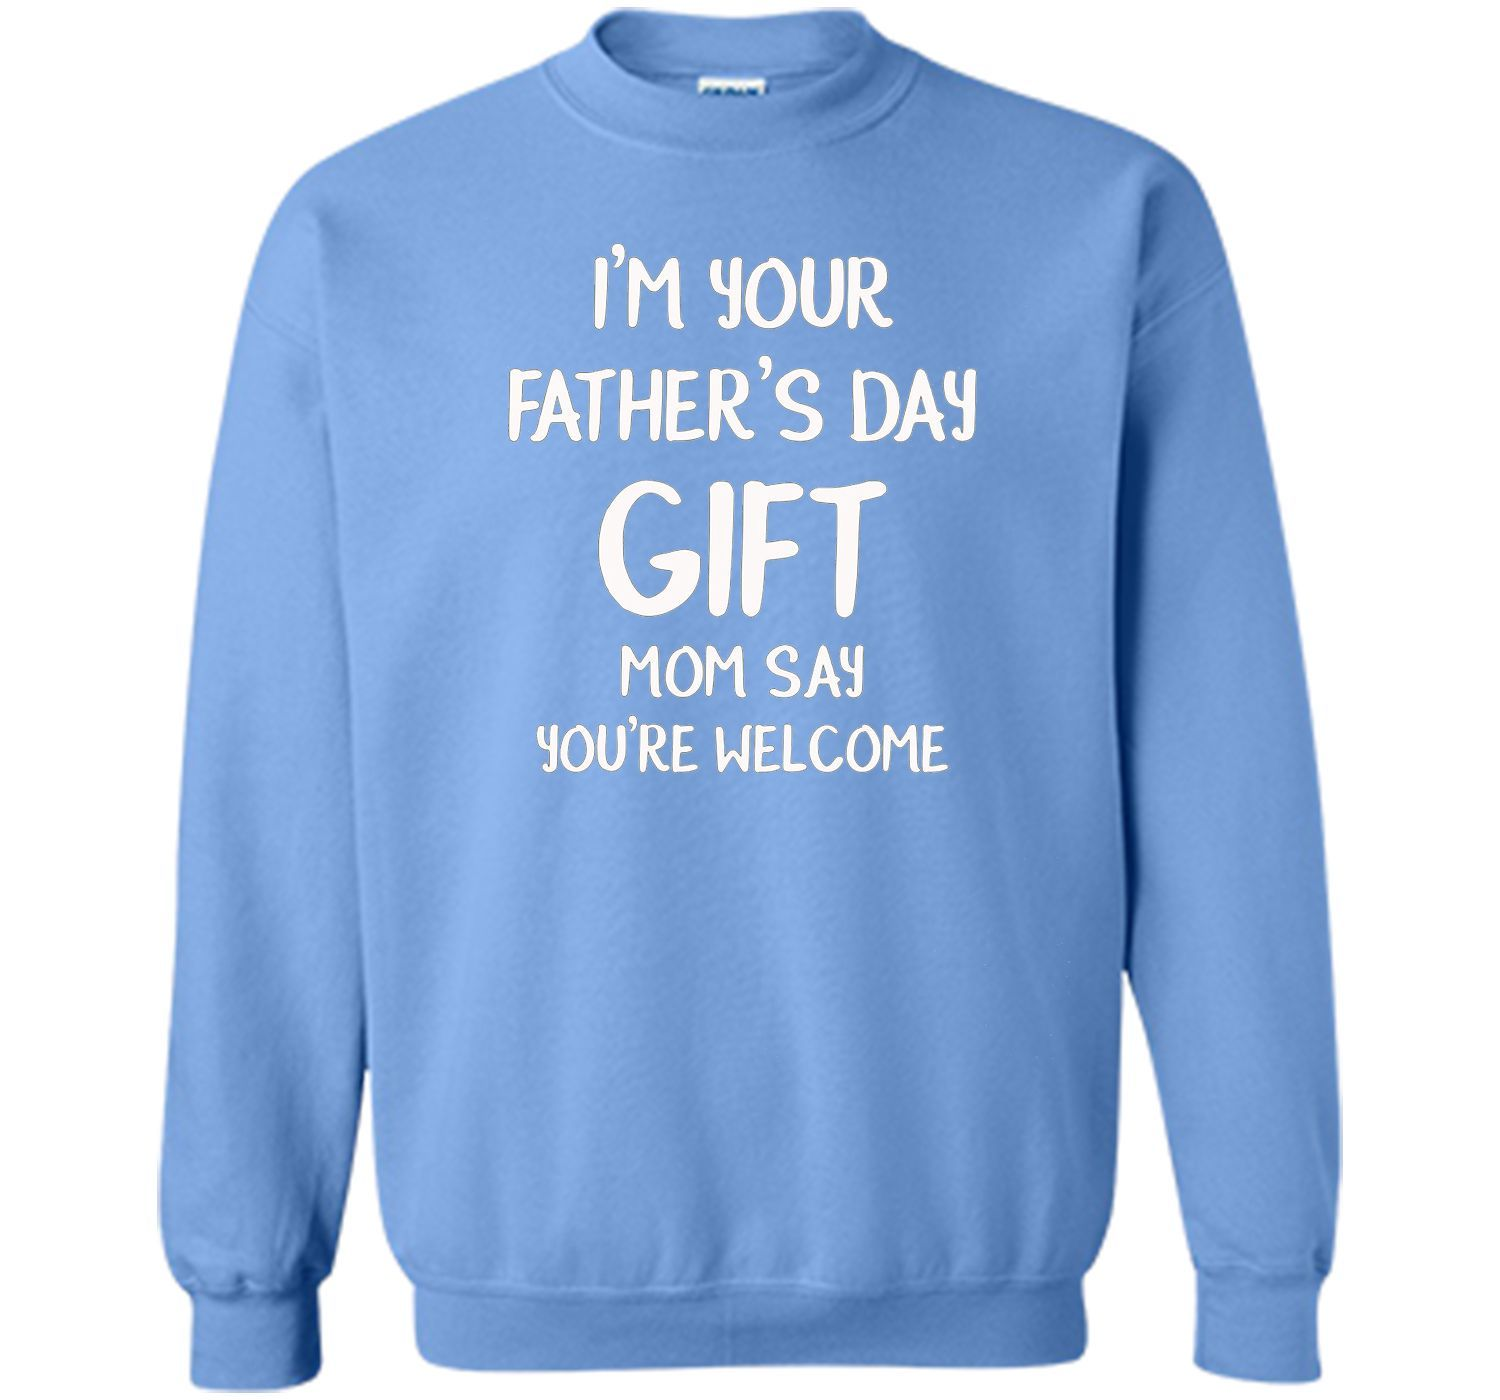 I'm your father's day gift Mom say you're welcome